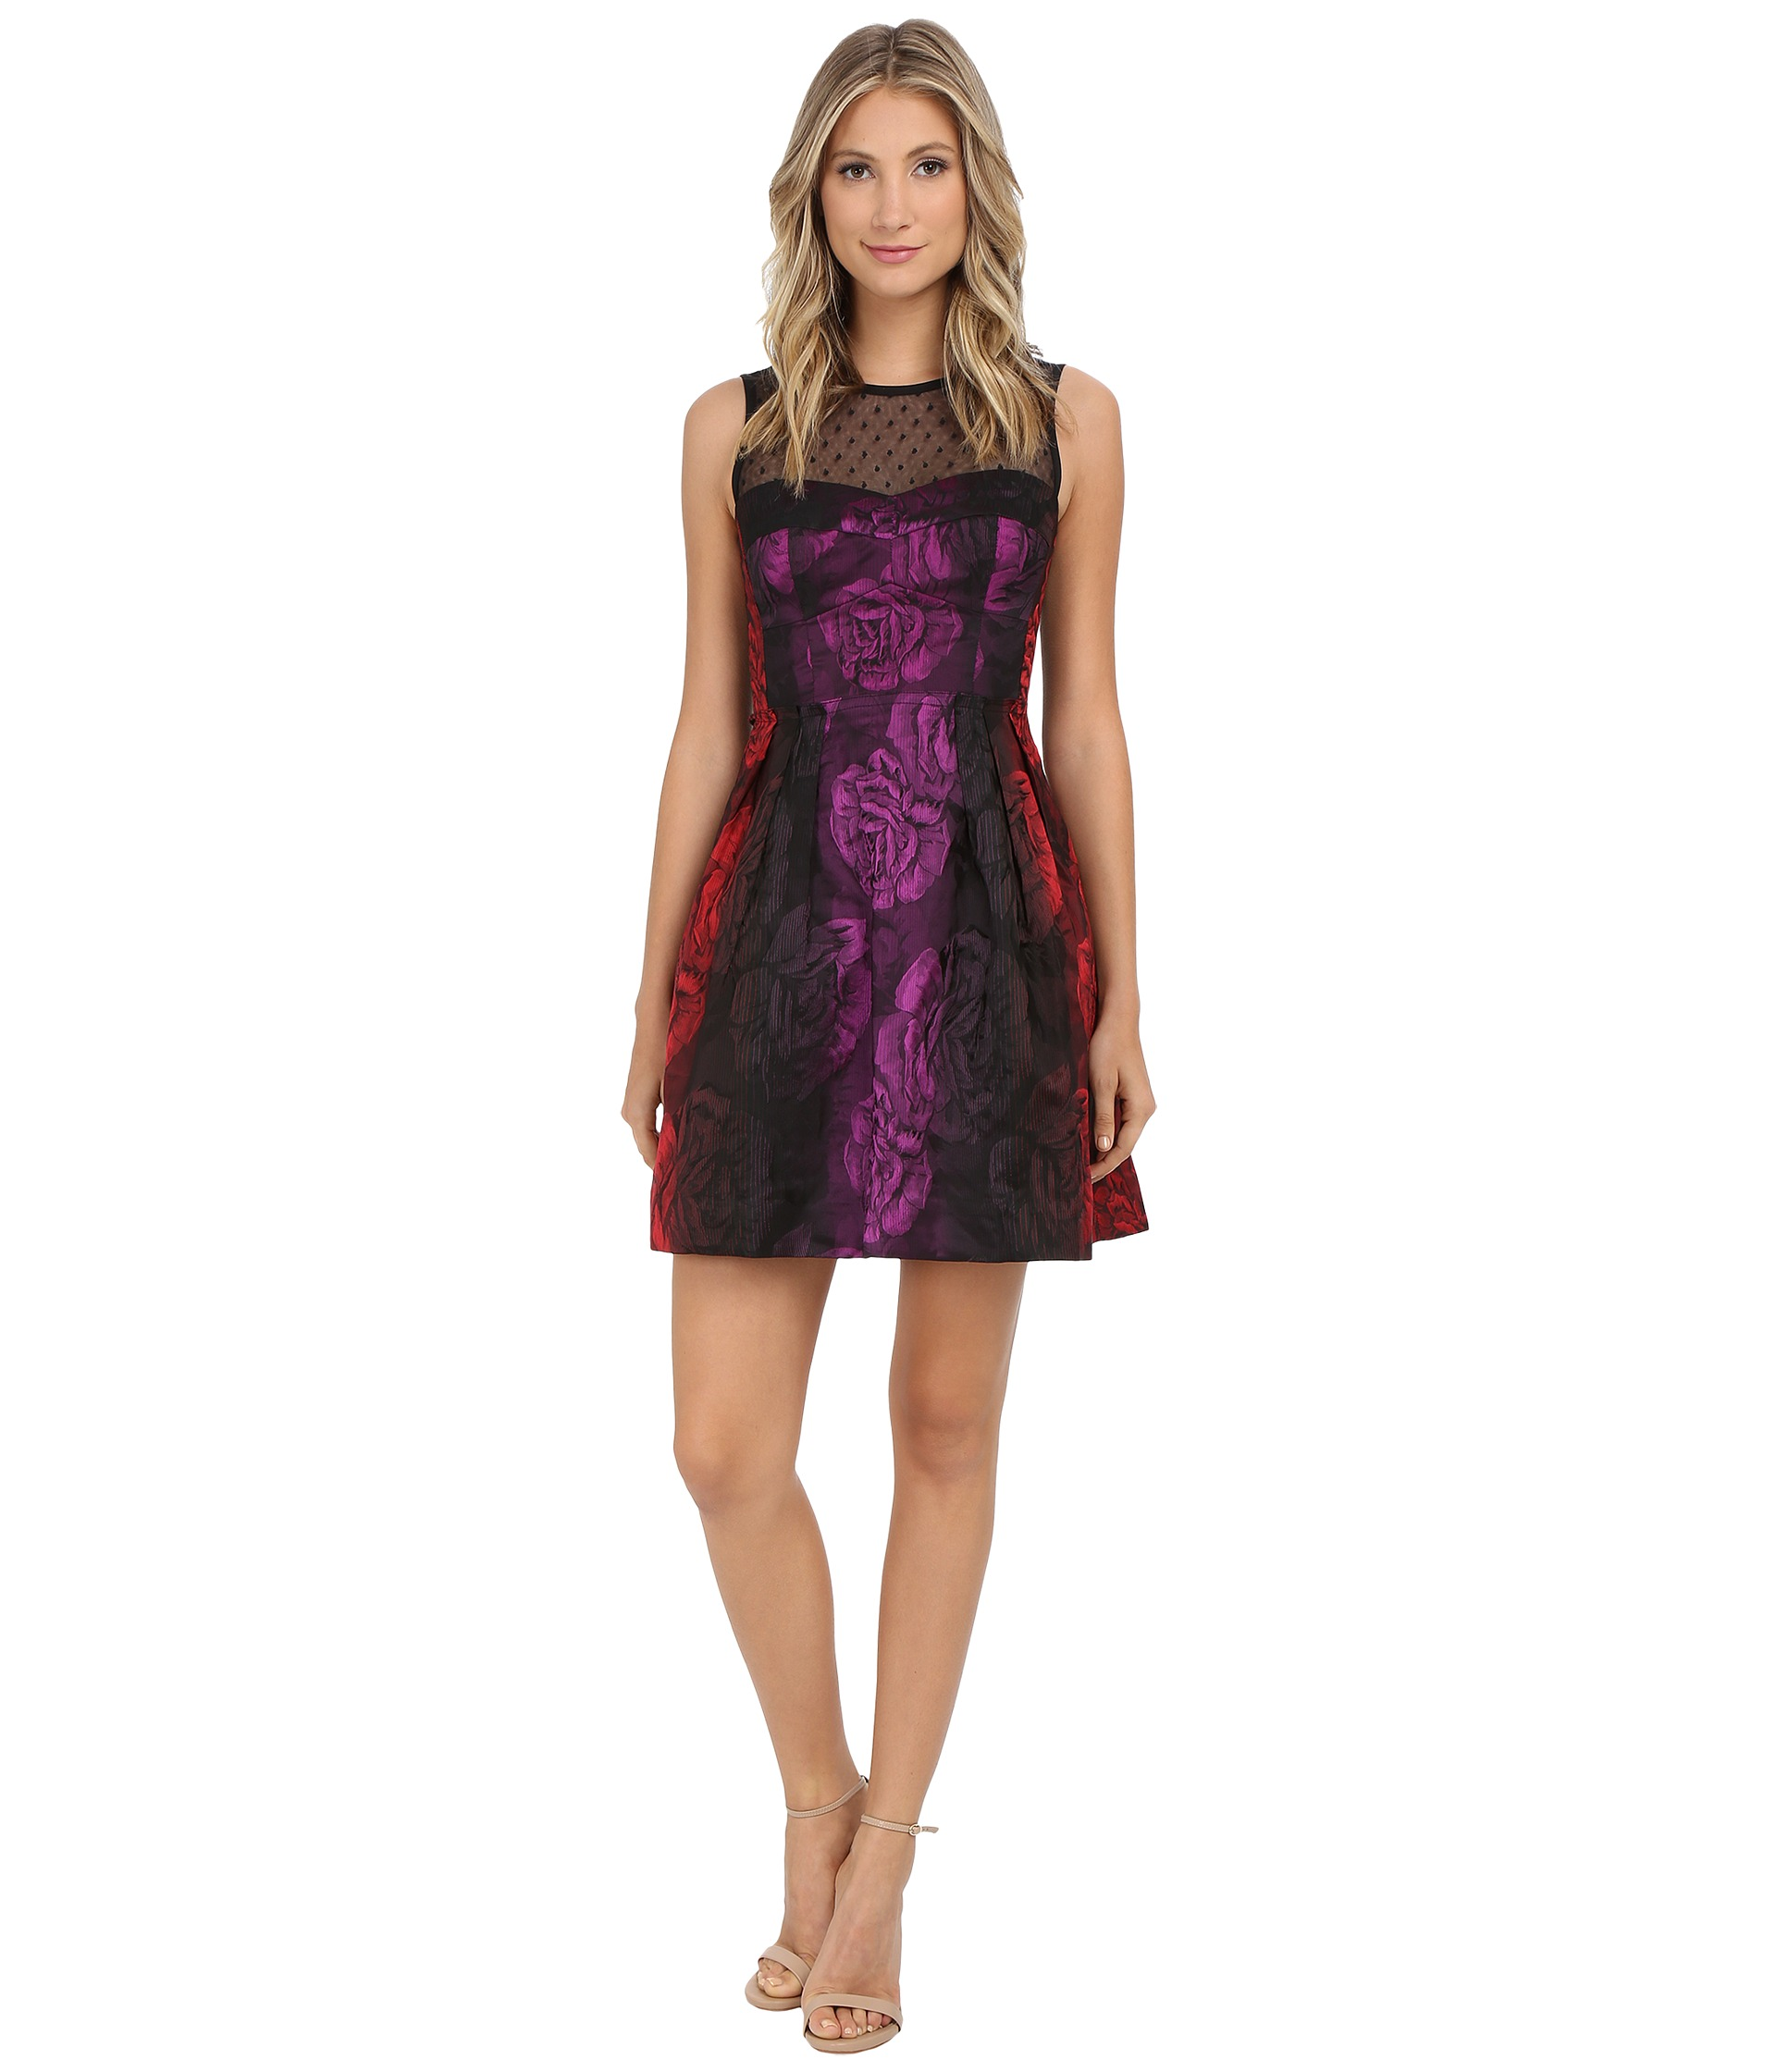 Nanette Lepore Juliet Rose Dress - 6pm.com